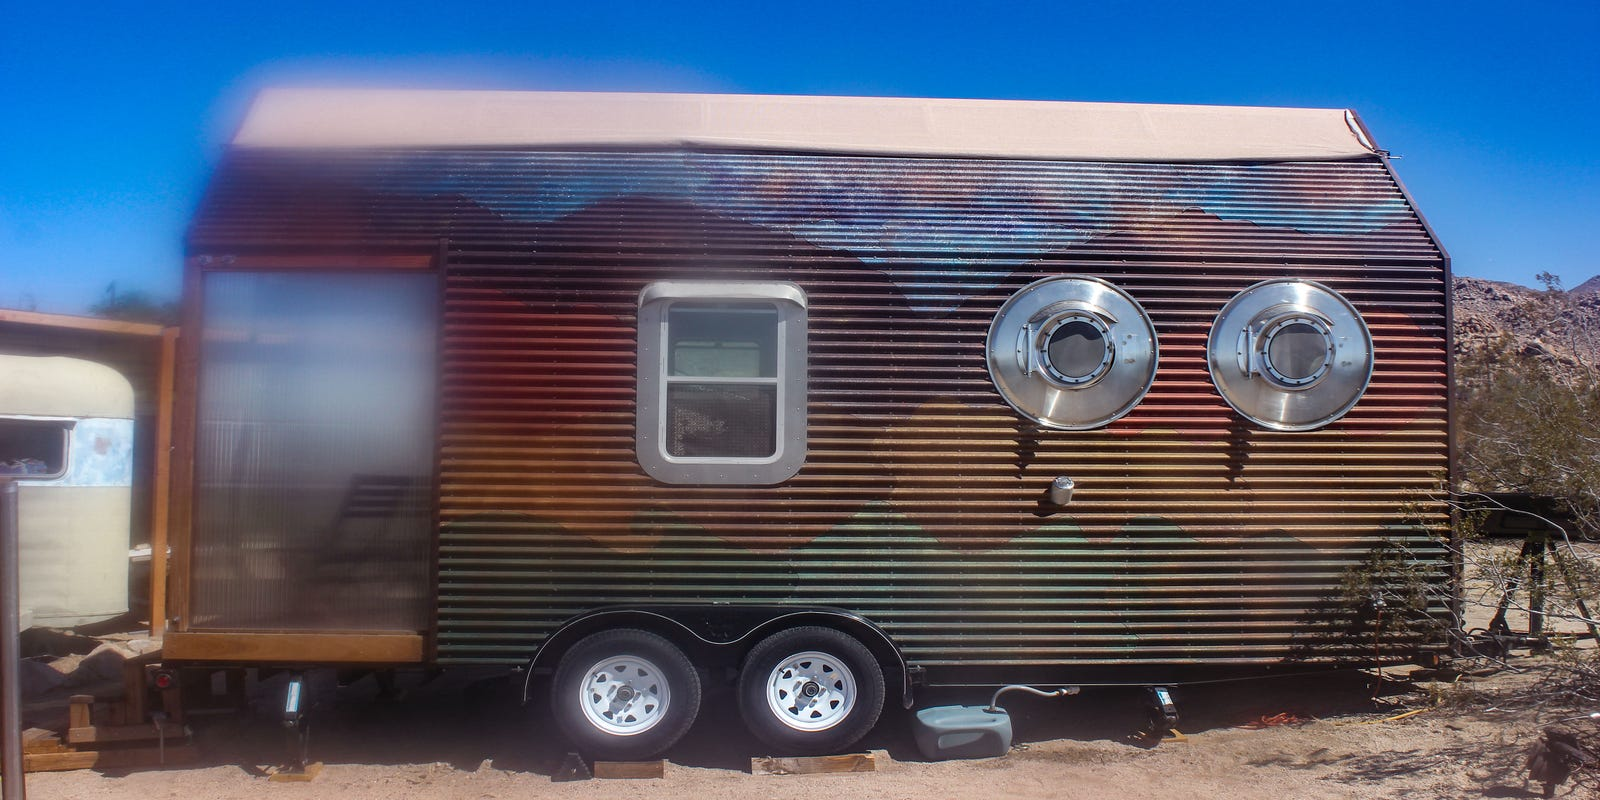 See inside a tiny home on wheels that's also an art installation